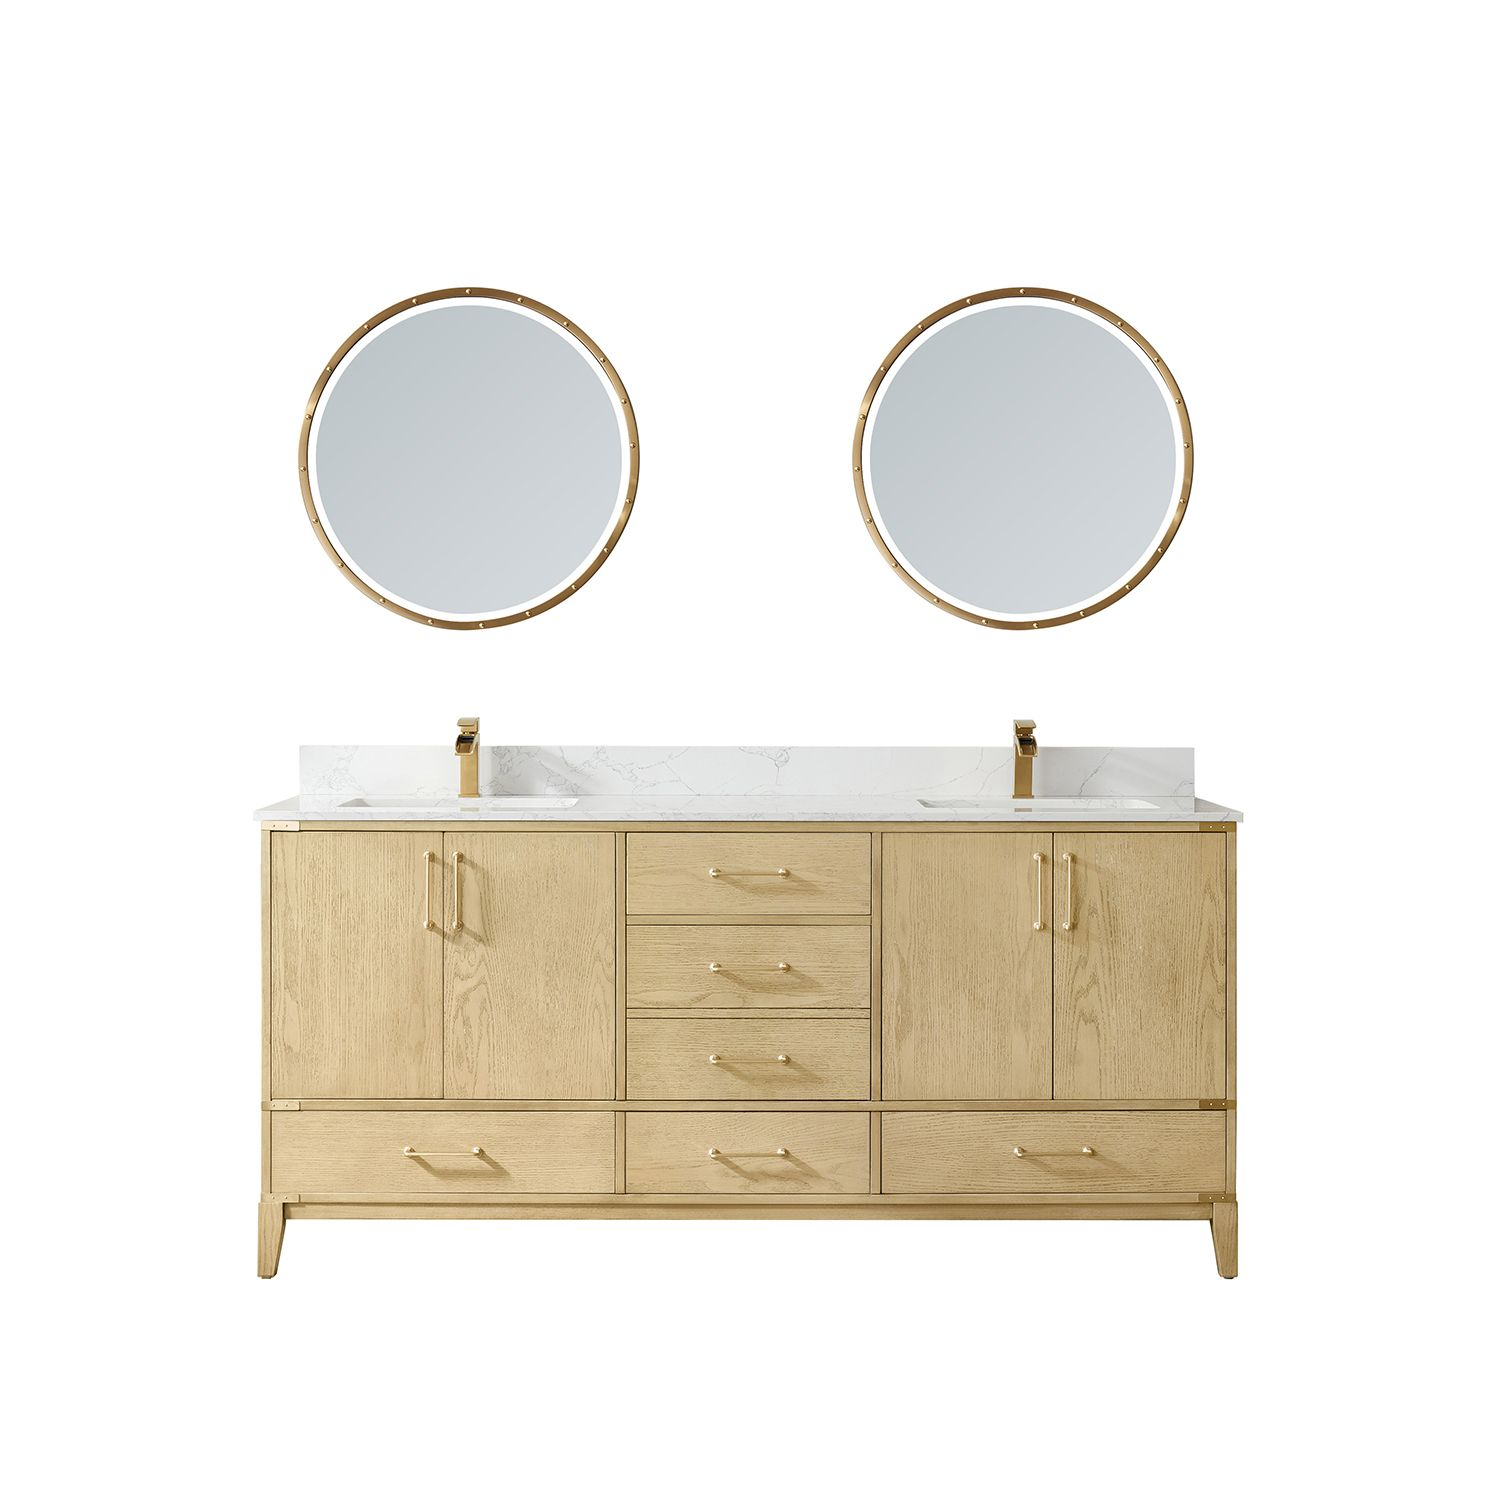 """72"""" Vanity in Washed Ash with White Composite Grain Stone Countertop Without Mirror"""